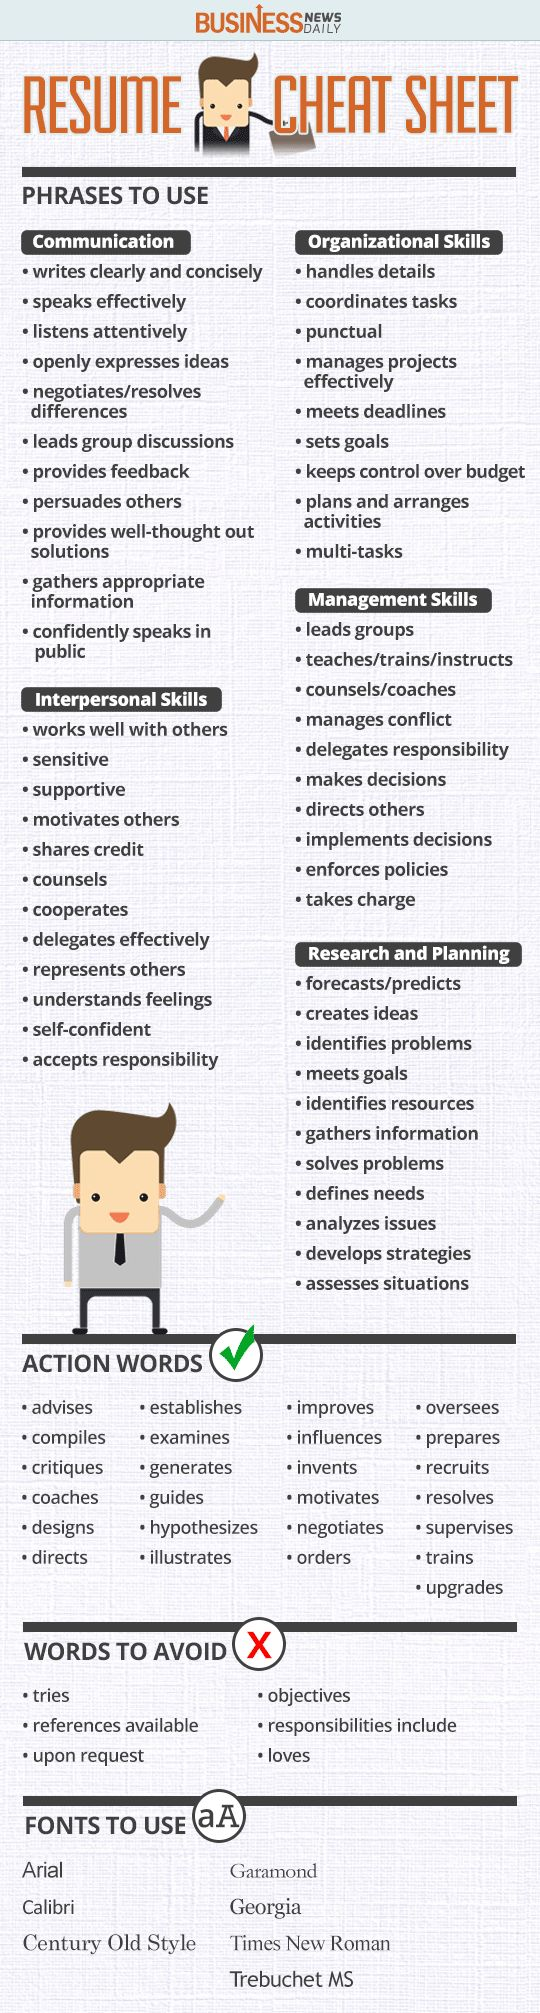 Opposenewapstandardsus  Ravishing  Ideas About Resume On Pinterest  Cv Format Resume Cv And  With Goodlooking Resume Cheat Sheet Infographic Andrews Almost Done With A Complete Unit On Employment Which With Nice Field Service Engineer Resume Also Radiology Resume In Addition Resume Buidler And Free Online Resume Builder And Download As Well As Debt Collector Resume Additionally Best Resume Creator From Pinterestcom With Opposenewapstandardsus  Goodlooking  Ideas About Resume On Pinterest  Cv Format Resume Cv And  With Nice Resume Cheat Sheet Infographic Andrews Almost Done With A Complete Unit On Employment Which And Ravishing Field Service Engineer Resume Also Radiology Resume In Addition Resume Buidler From Pinterestcom